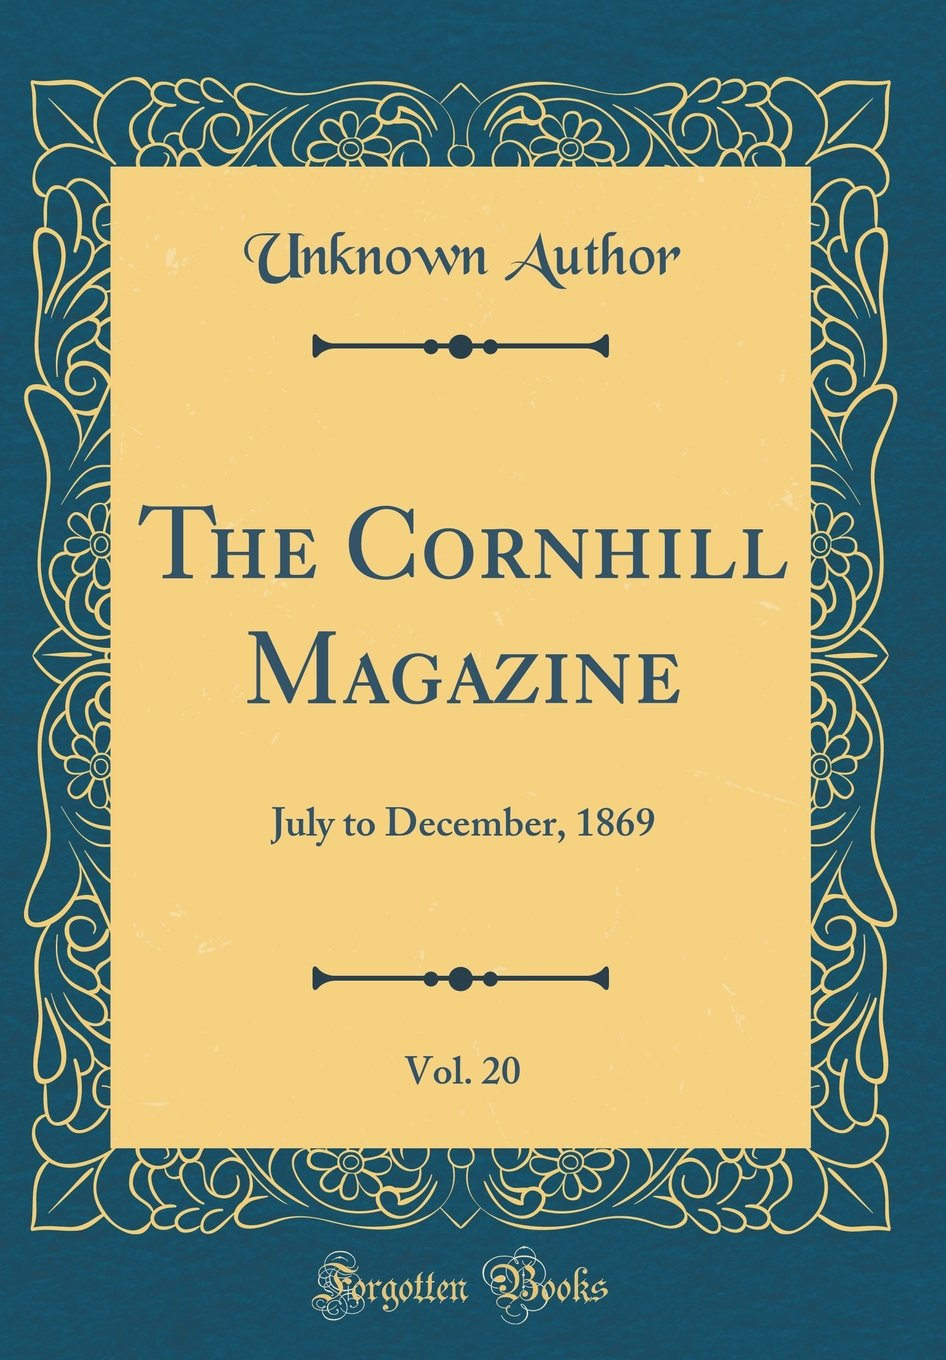 The Cornhill Magazine, Vol. 20: July to December, 1869 (Classic Reprint) PDF